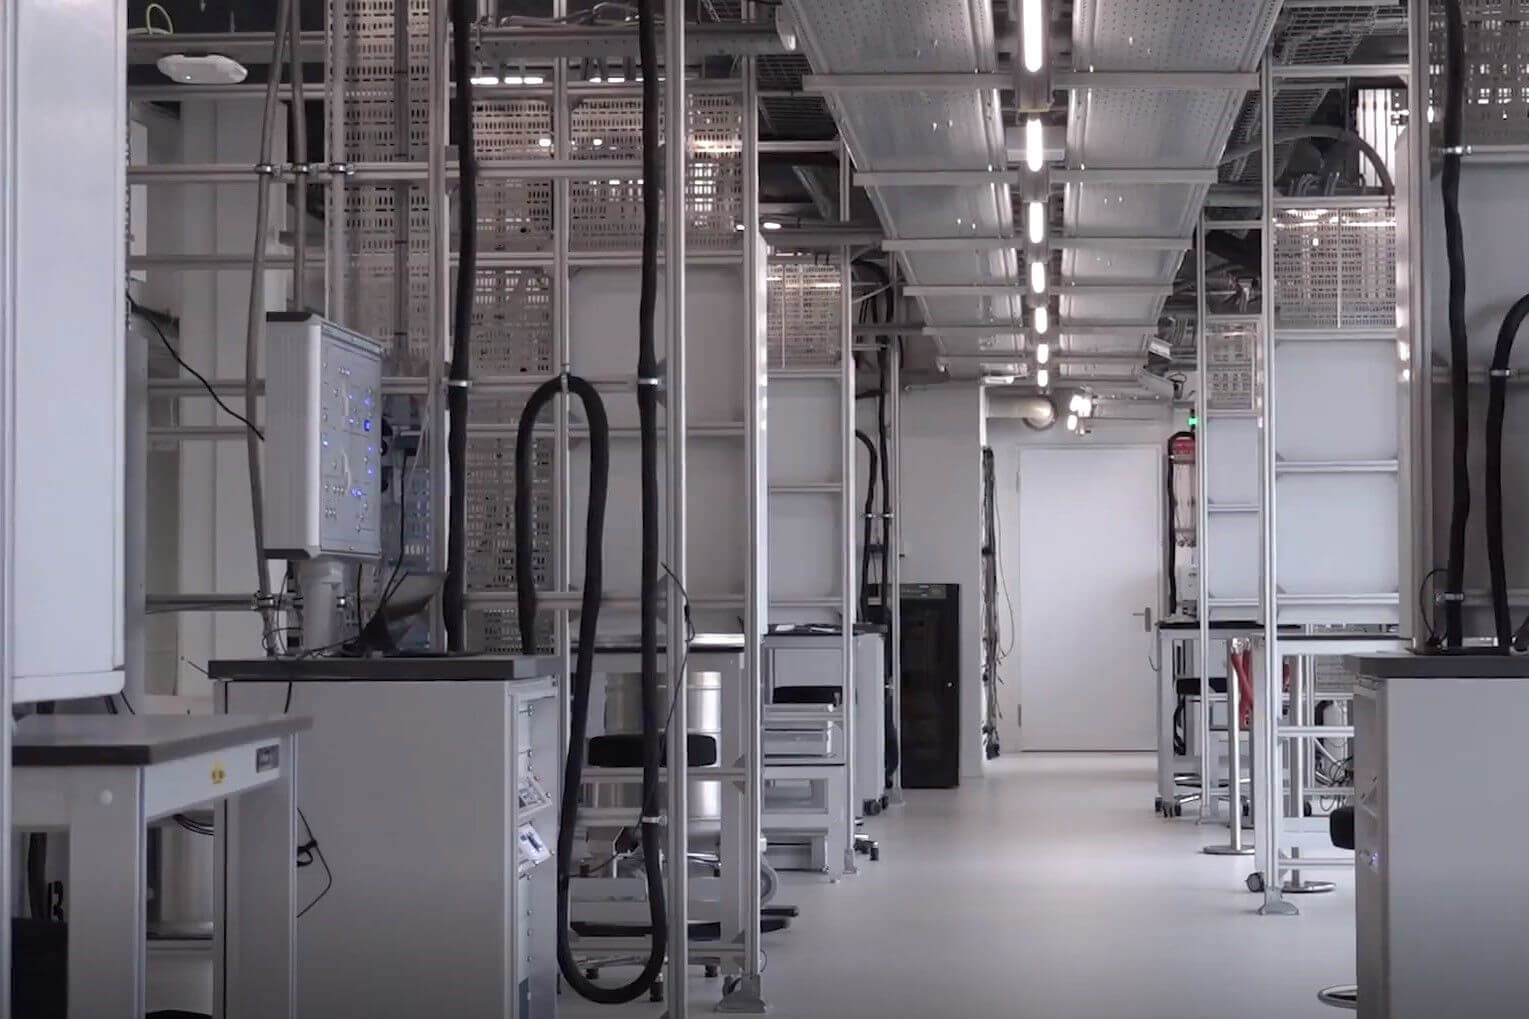 Cleanrooms & laboratoria<em>Maintenance-free luminaires with a very long lifespan are of great importance for continuity within a controlled environment</em>